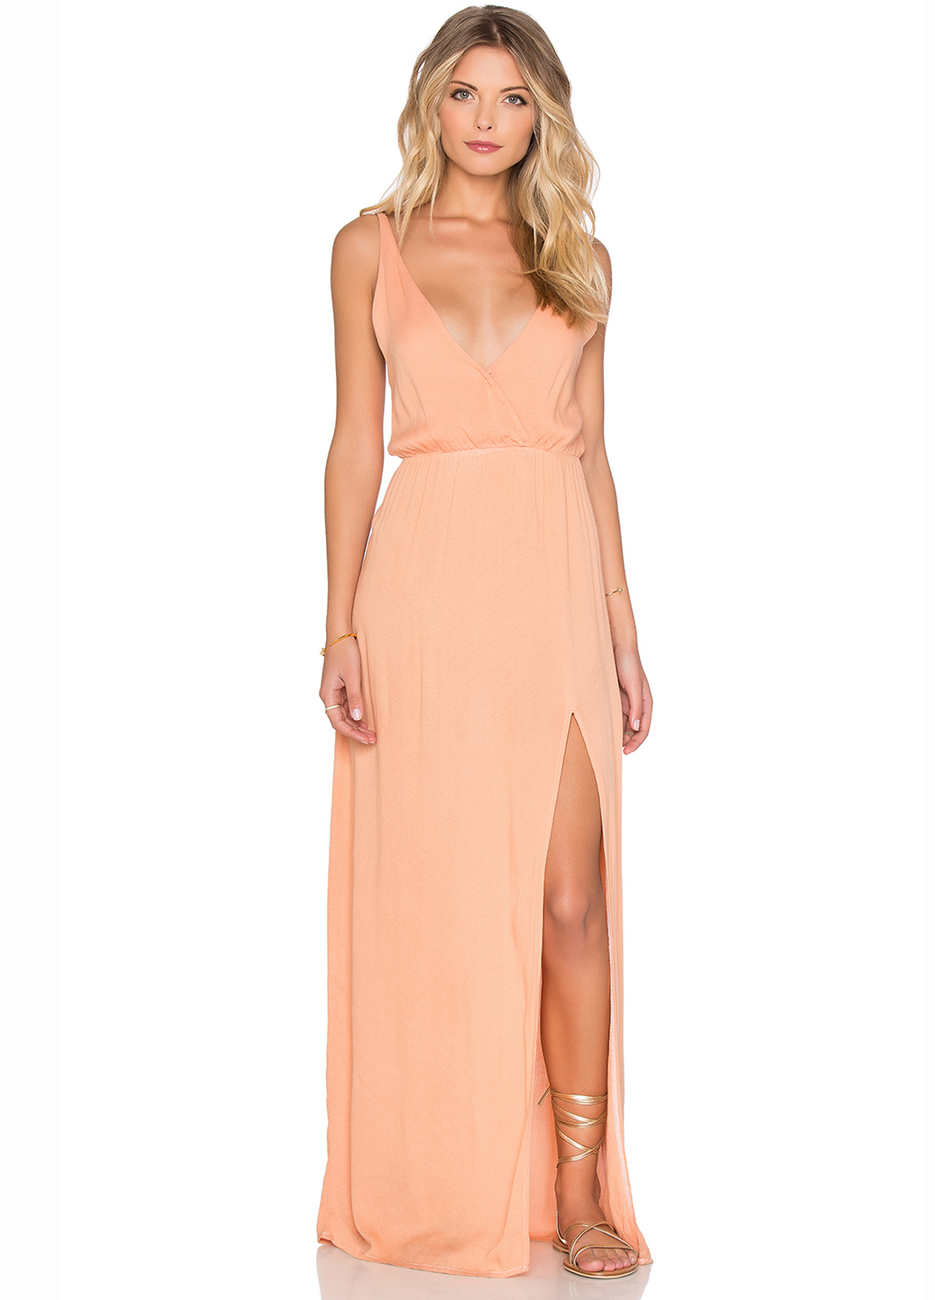 Blue Life High Tide Maxi Dress in Papaya